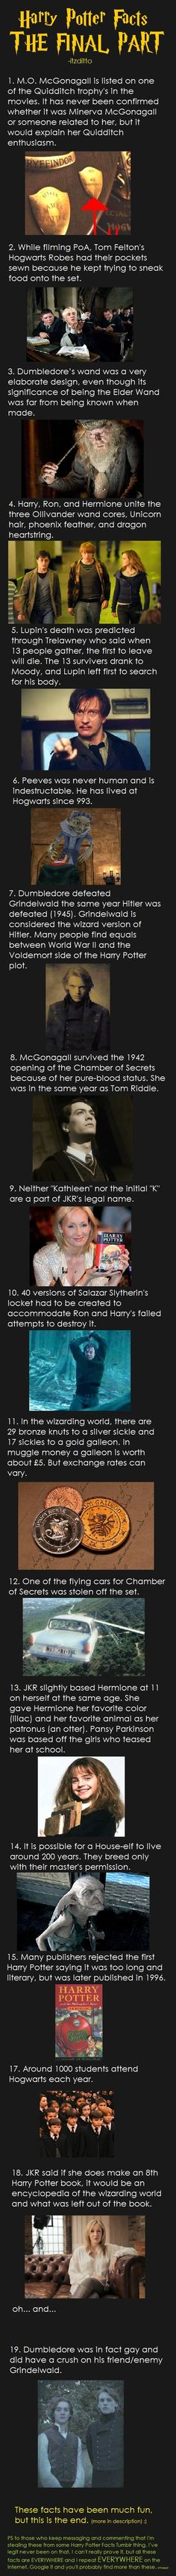 HP Facts. The last fact is, welll..... Let's say, VERY interesting! :S